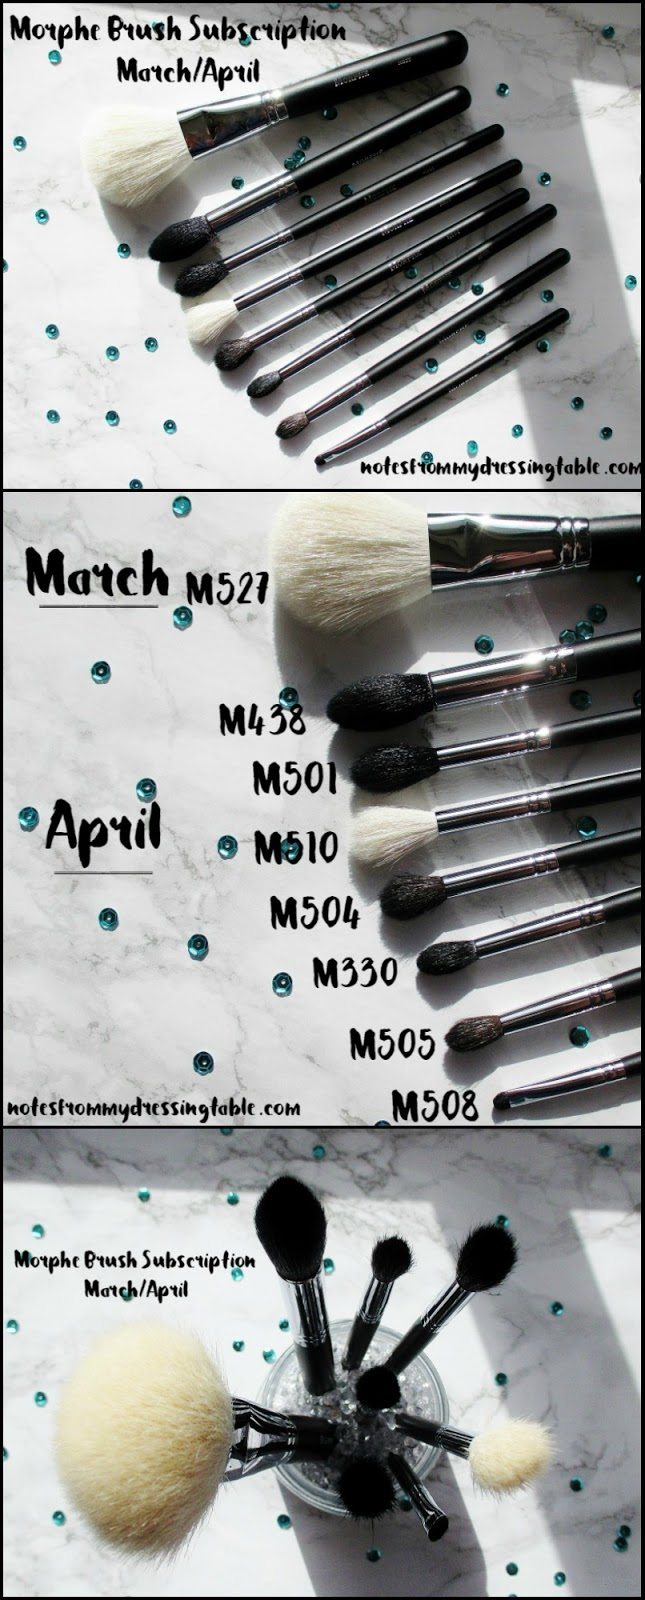 Morphe Brush Subscription March/April